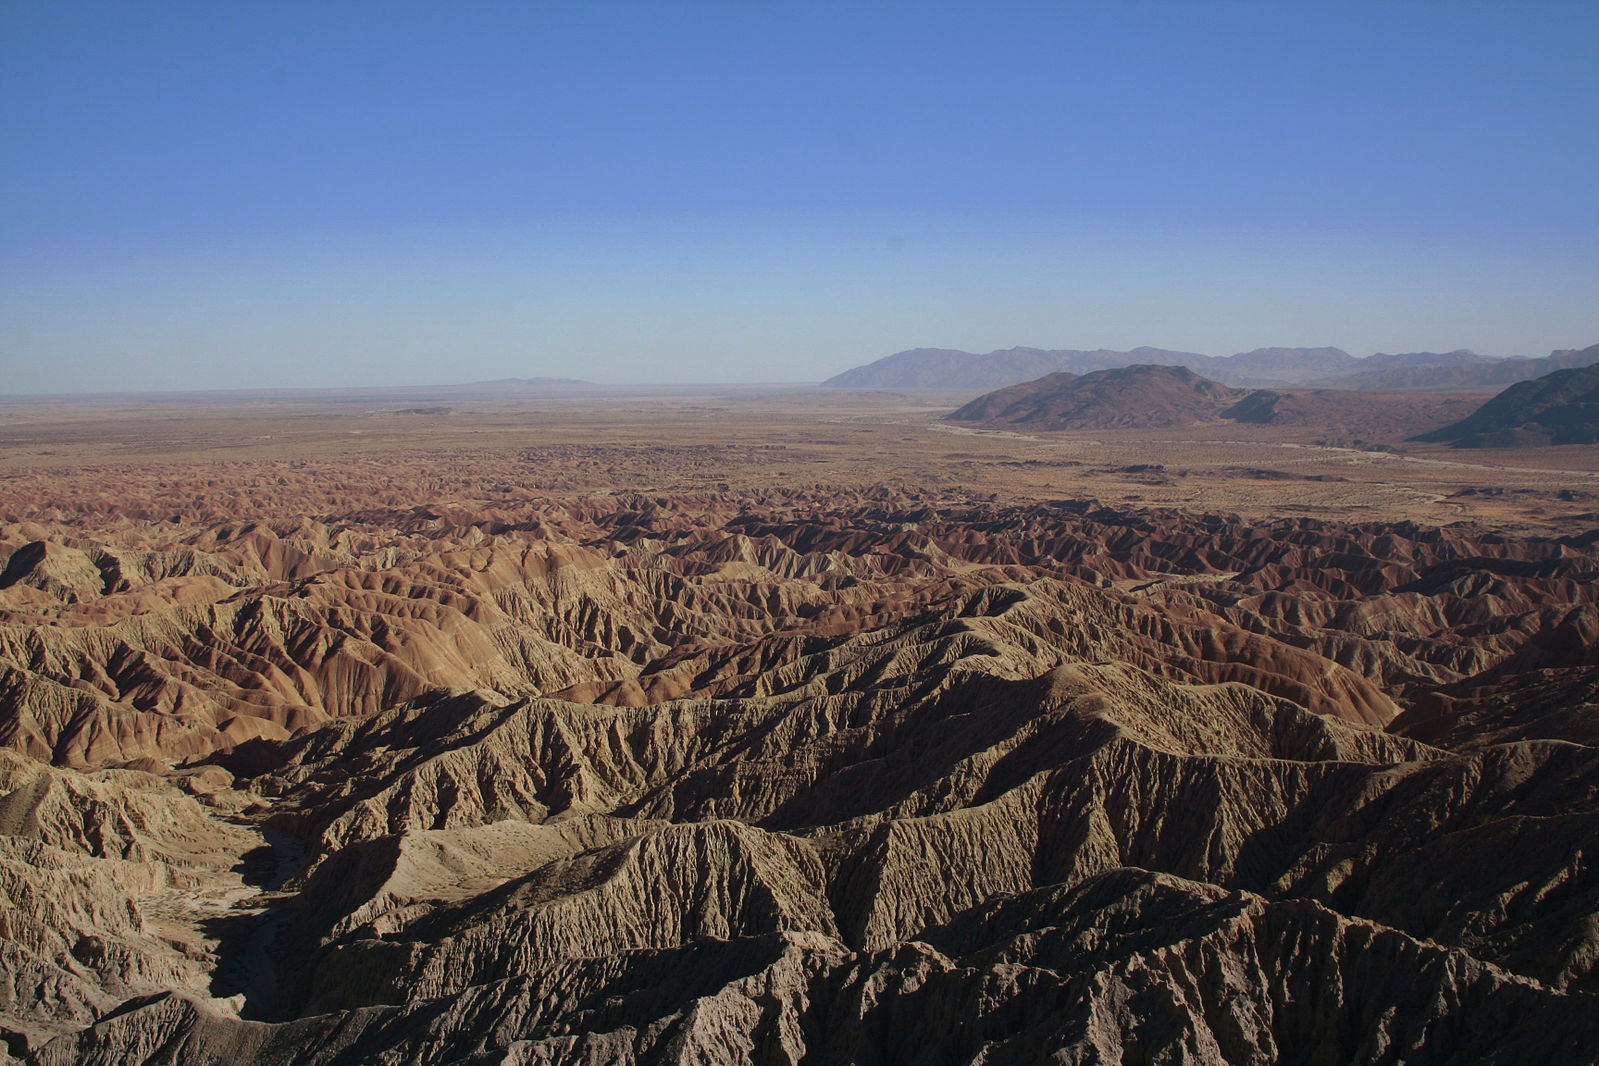 Font's Point Anza-Borrego, photo by David Corby  https://commons.wikimedia.org/wiki/File:Fontspoint02262006.JPG